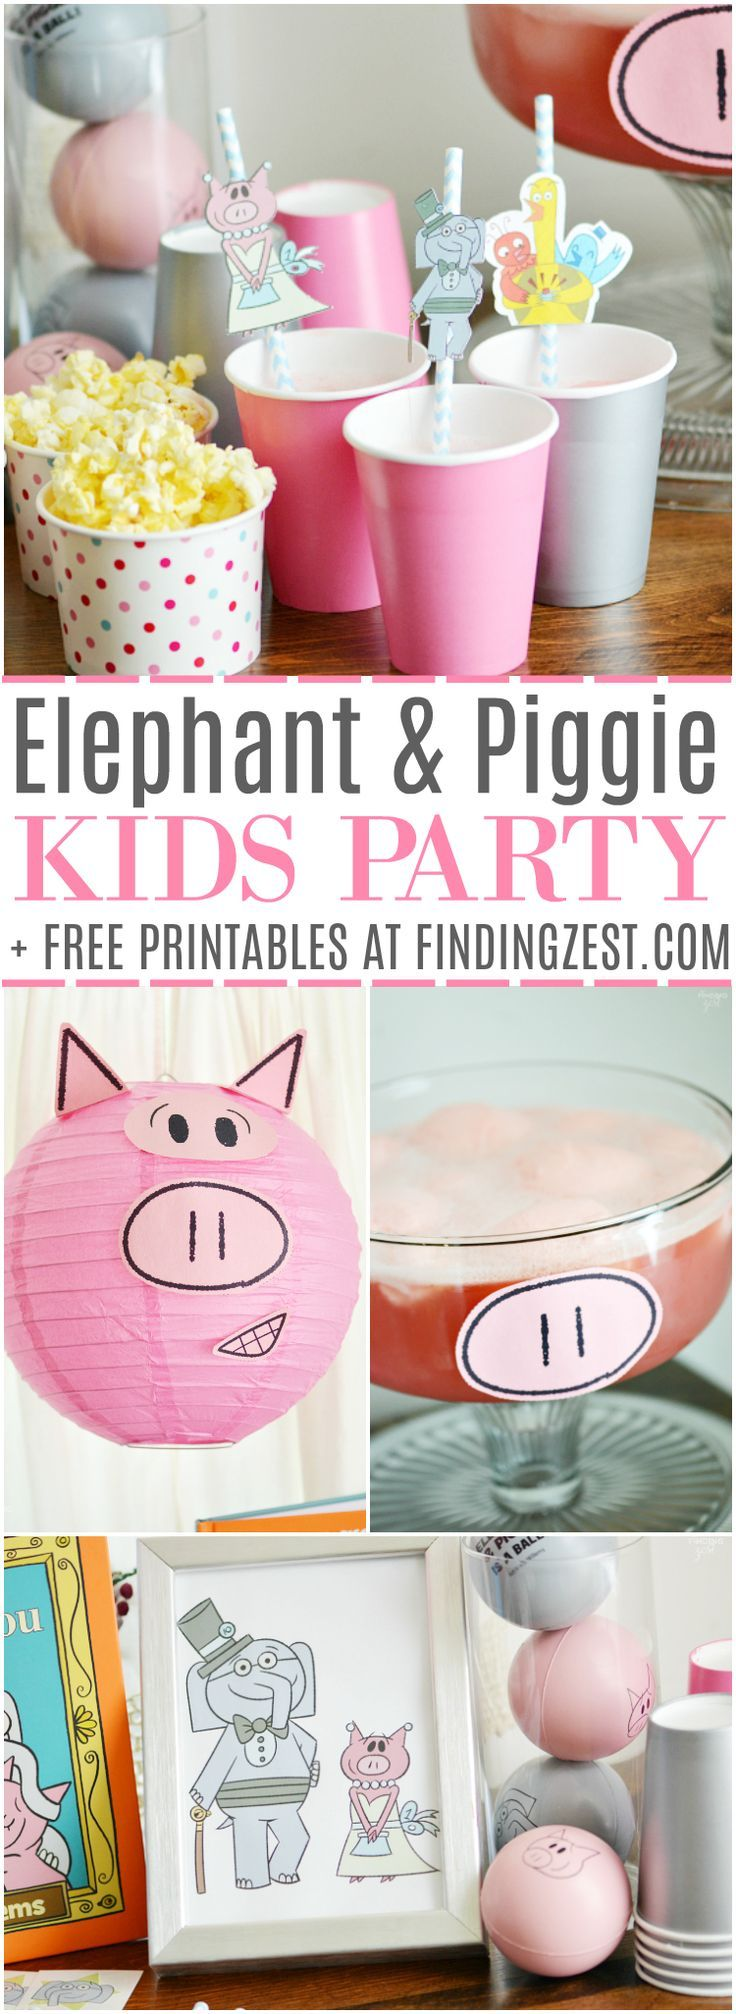 It is an Elephant & Piggie party, including free printables! We are celebrating the 10th anniversary of this fun book series by Mo Willems with piggie punch, books and fun decor!